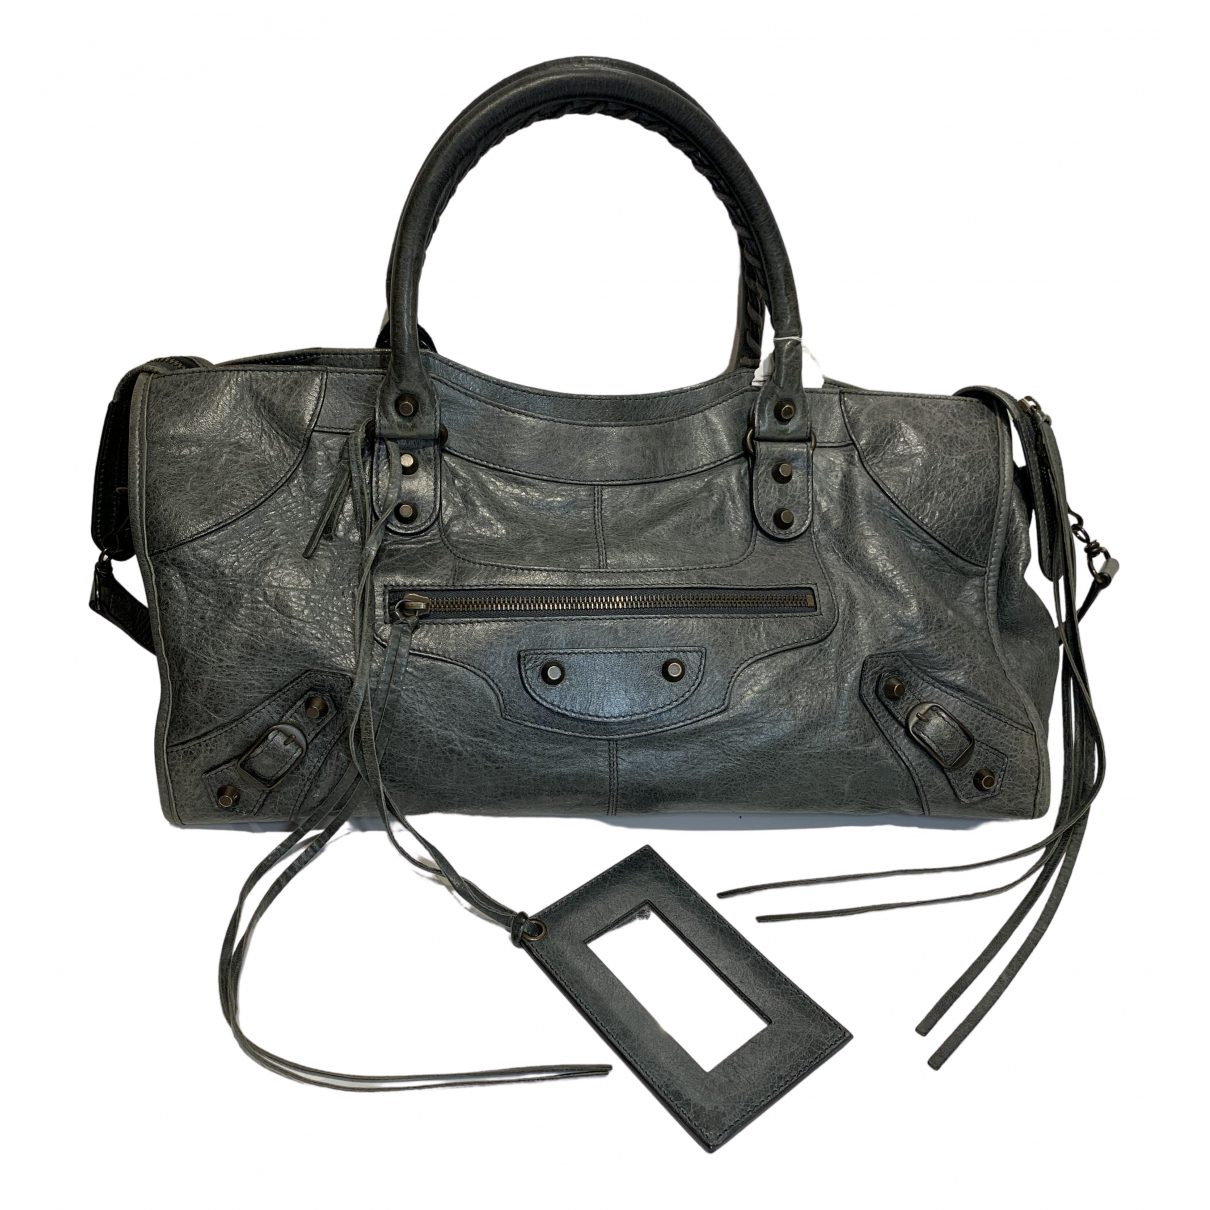 Balenciaga City Grey Leather handbag for Women \N